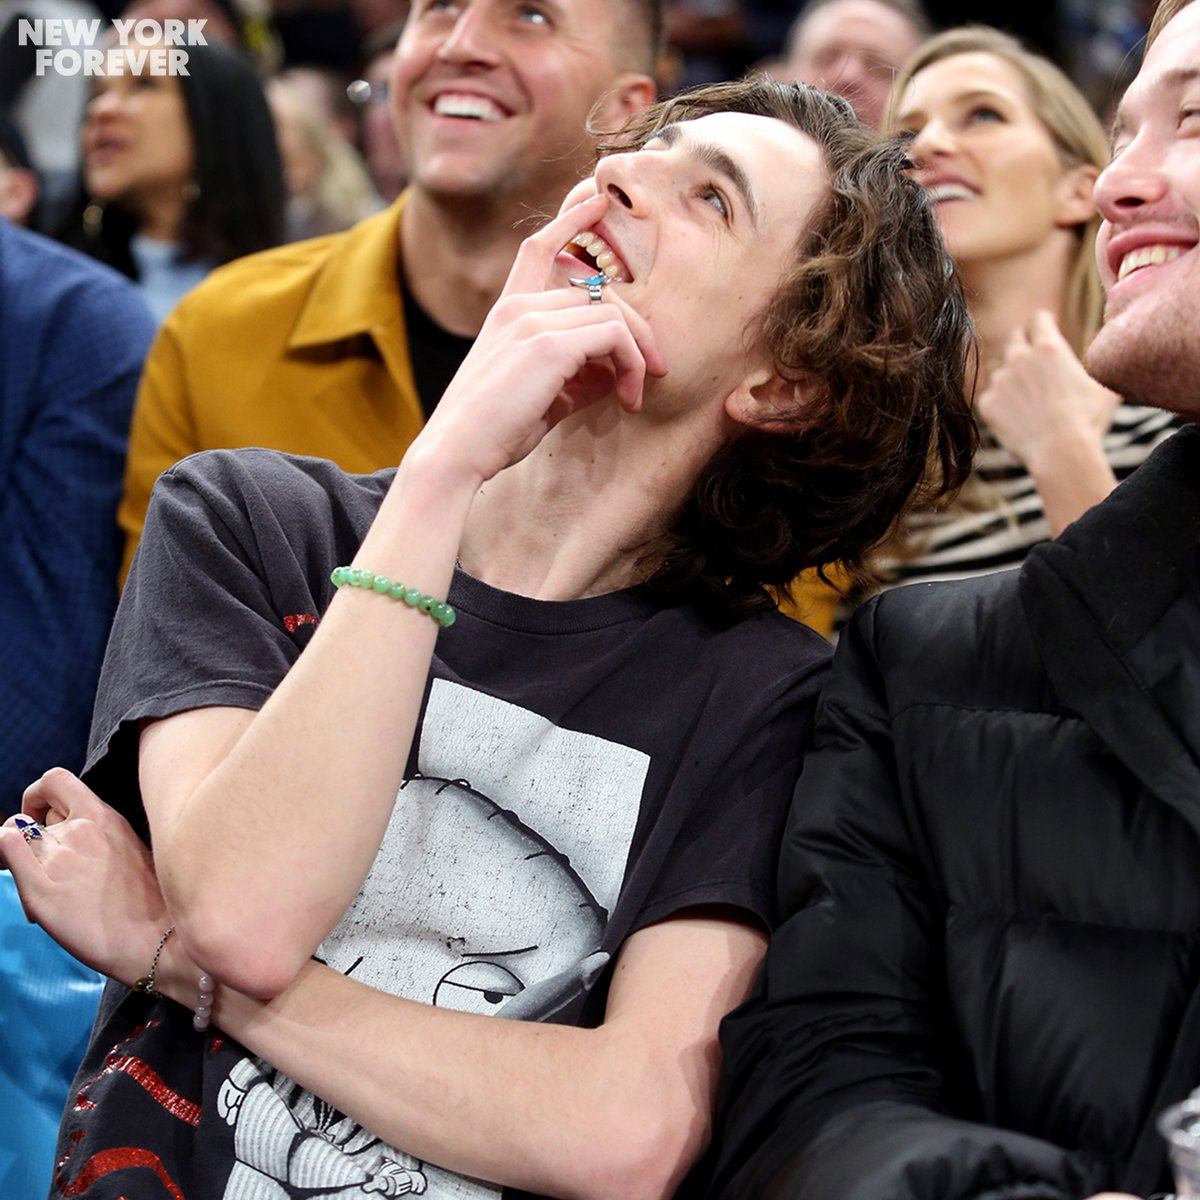 Thanks for coming out last night, @RealChalamet 👋